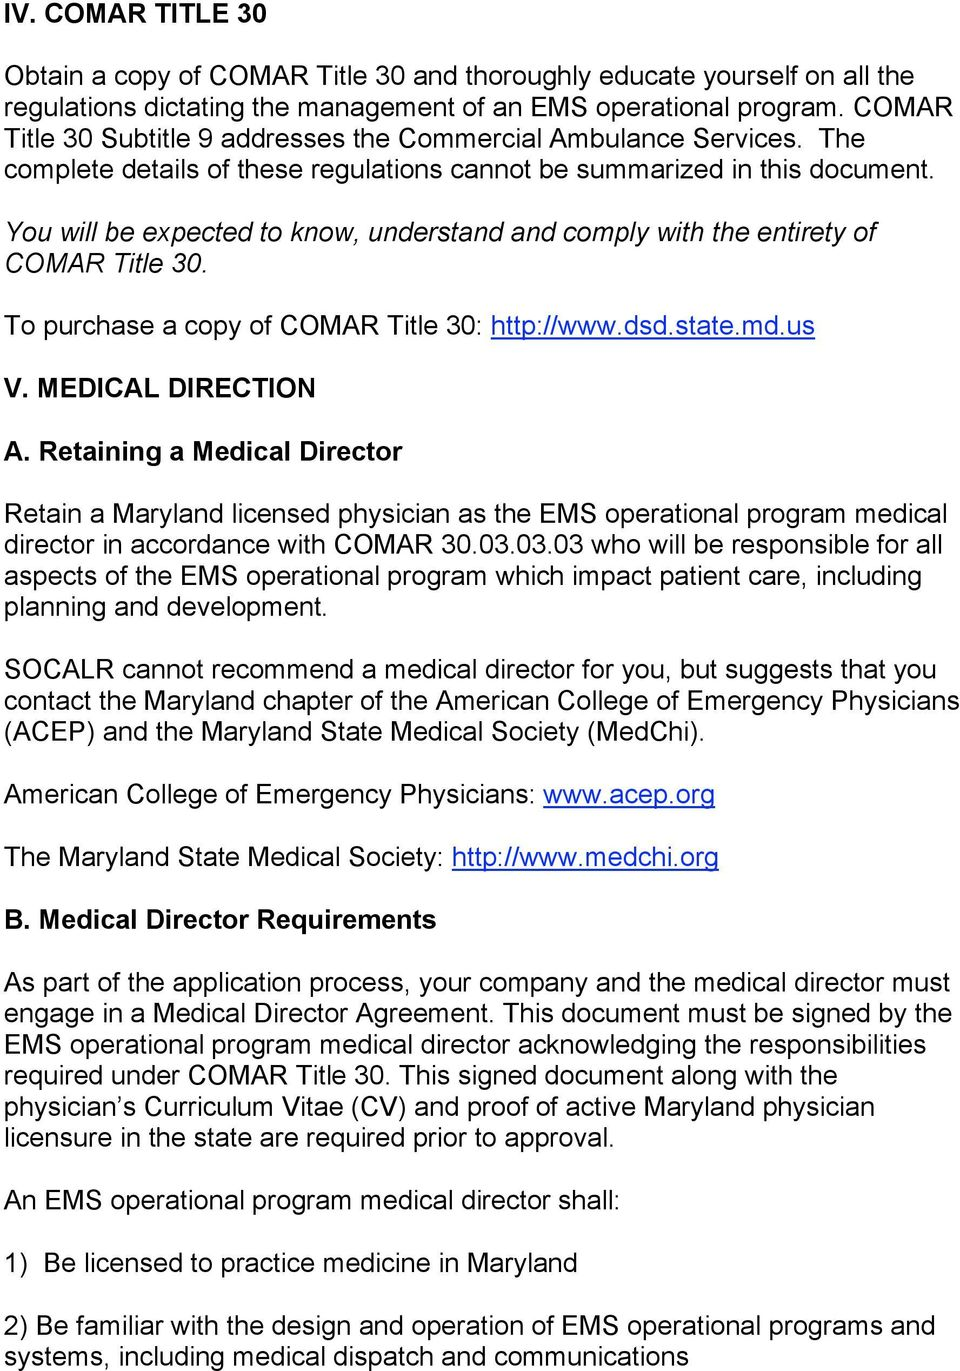 You will be expected to know, understand and comply with the entirety of COMAR Title 30. To purchase a copy of COMAR Title 30: http://www.dsd.state.md.us V. MEDICAL DIRECTION A.